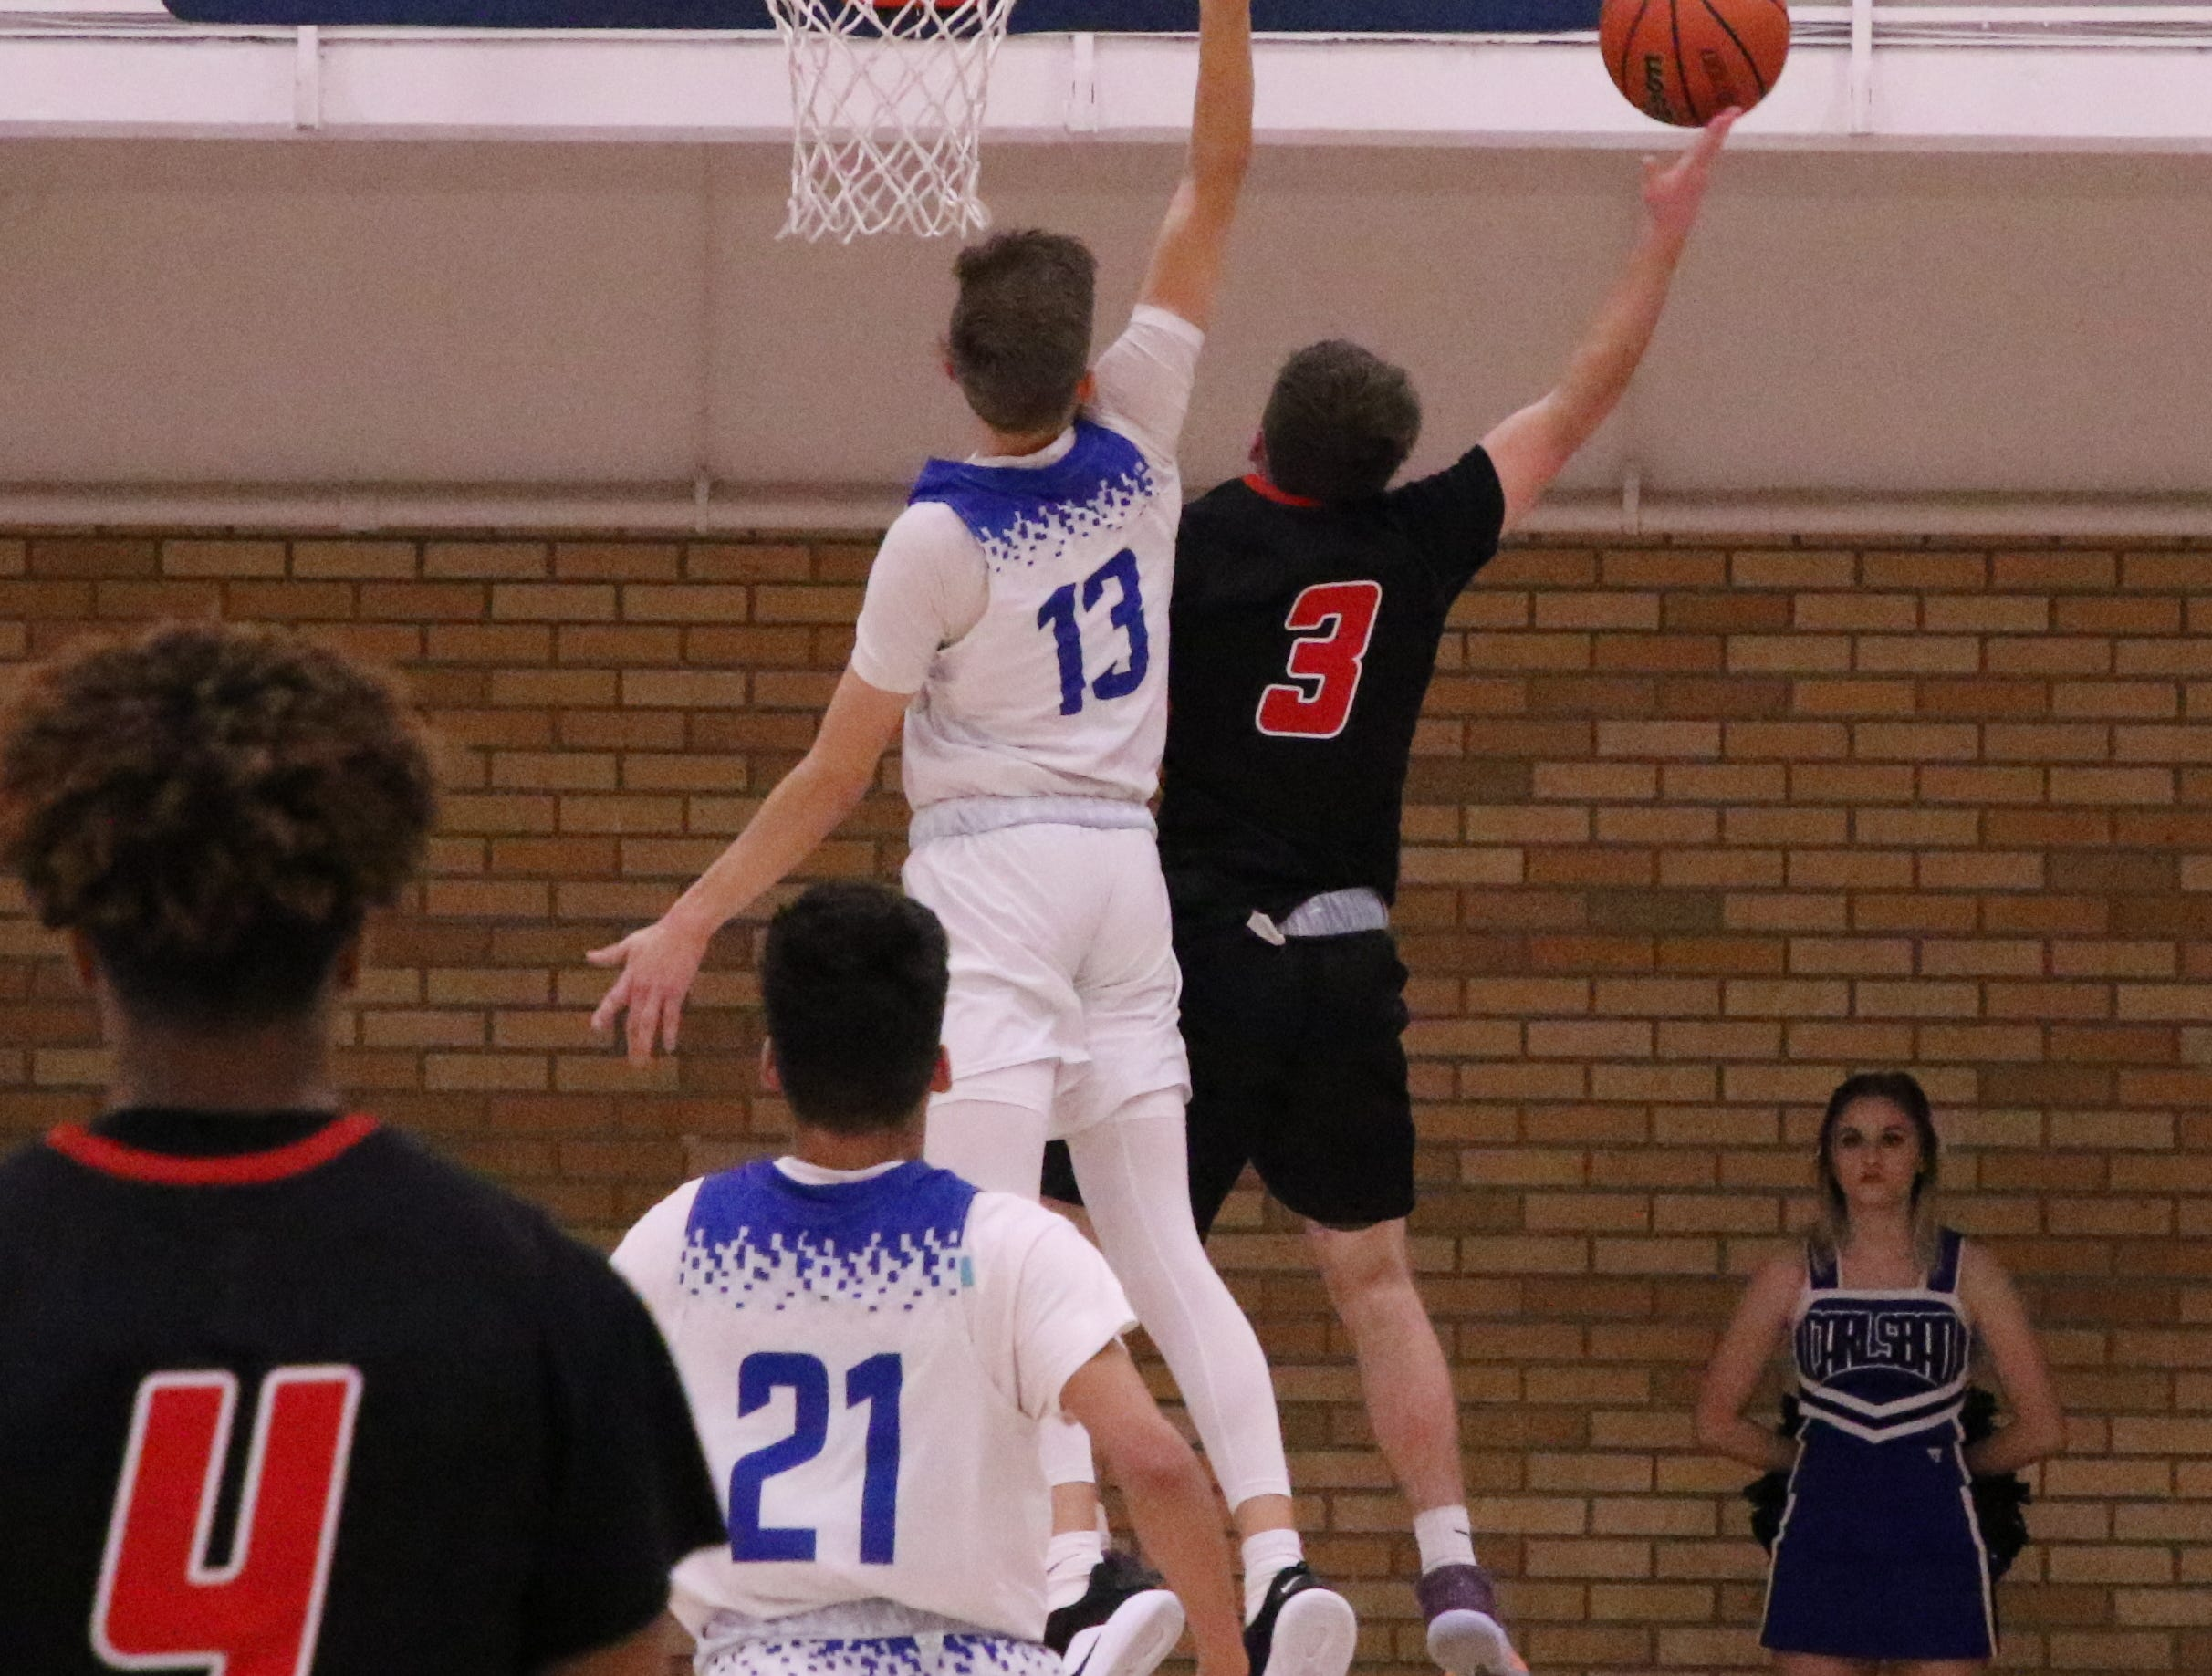 Carlsbad's Stevie Bartlett (13) goes for a block against Portales' Kellan Hightower (3) in the first half of Tuesday's game.